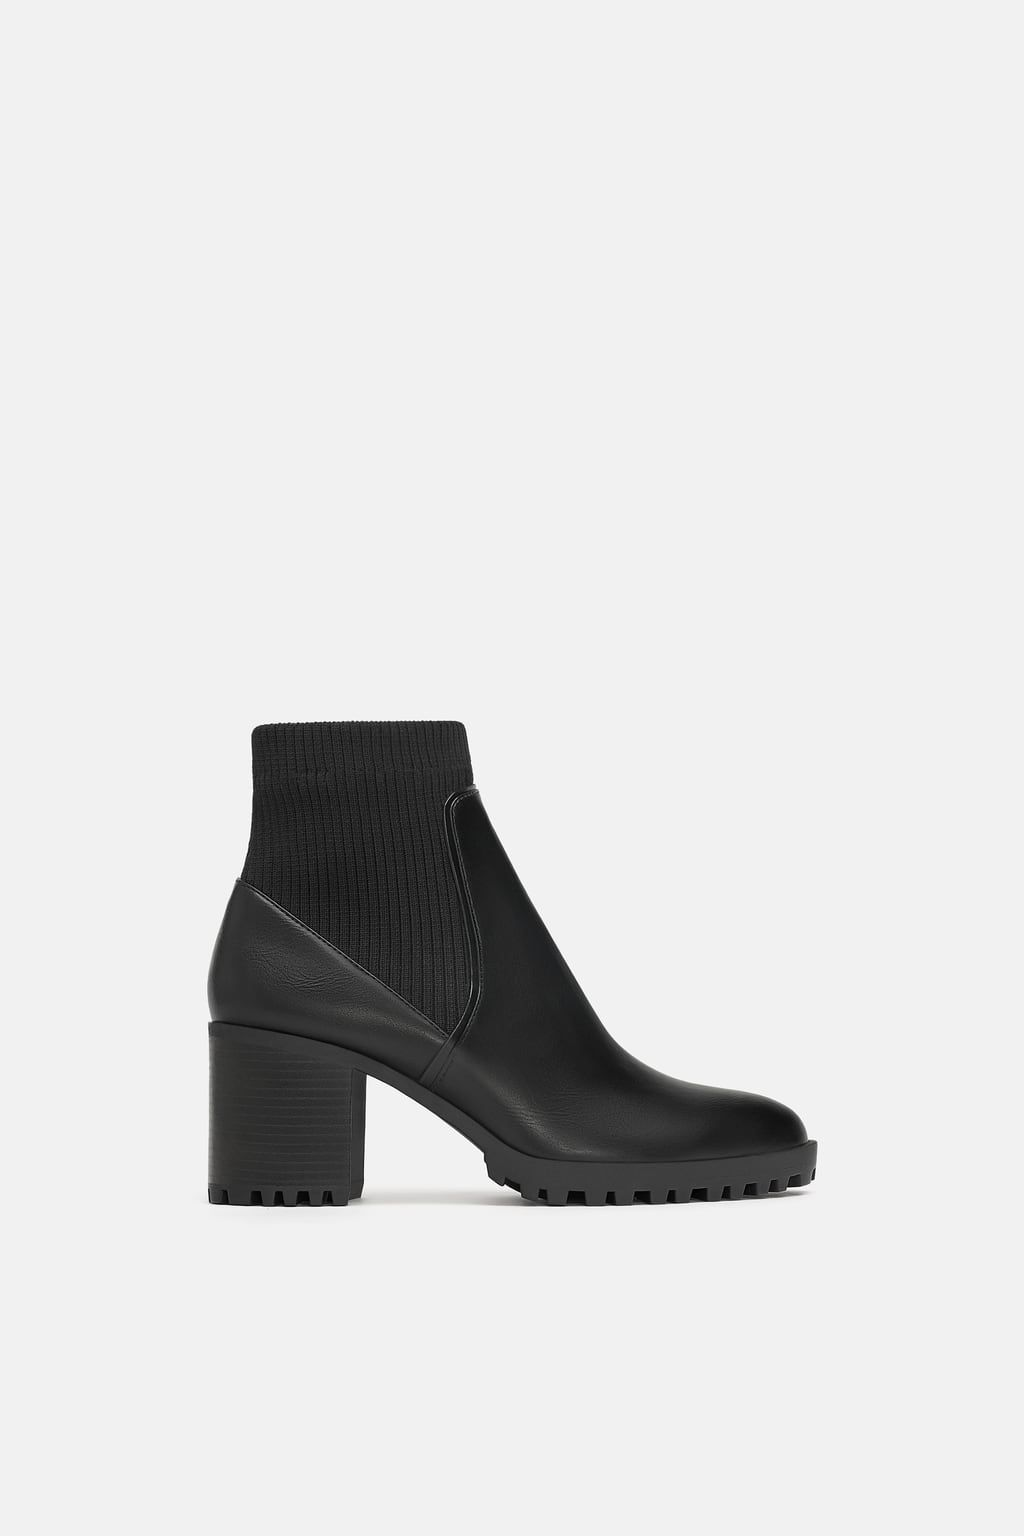 535ef21783a Image 2 of SOCK STYLE HEELED ANKLE BOOTS WITH LUG SOLES from Zara